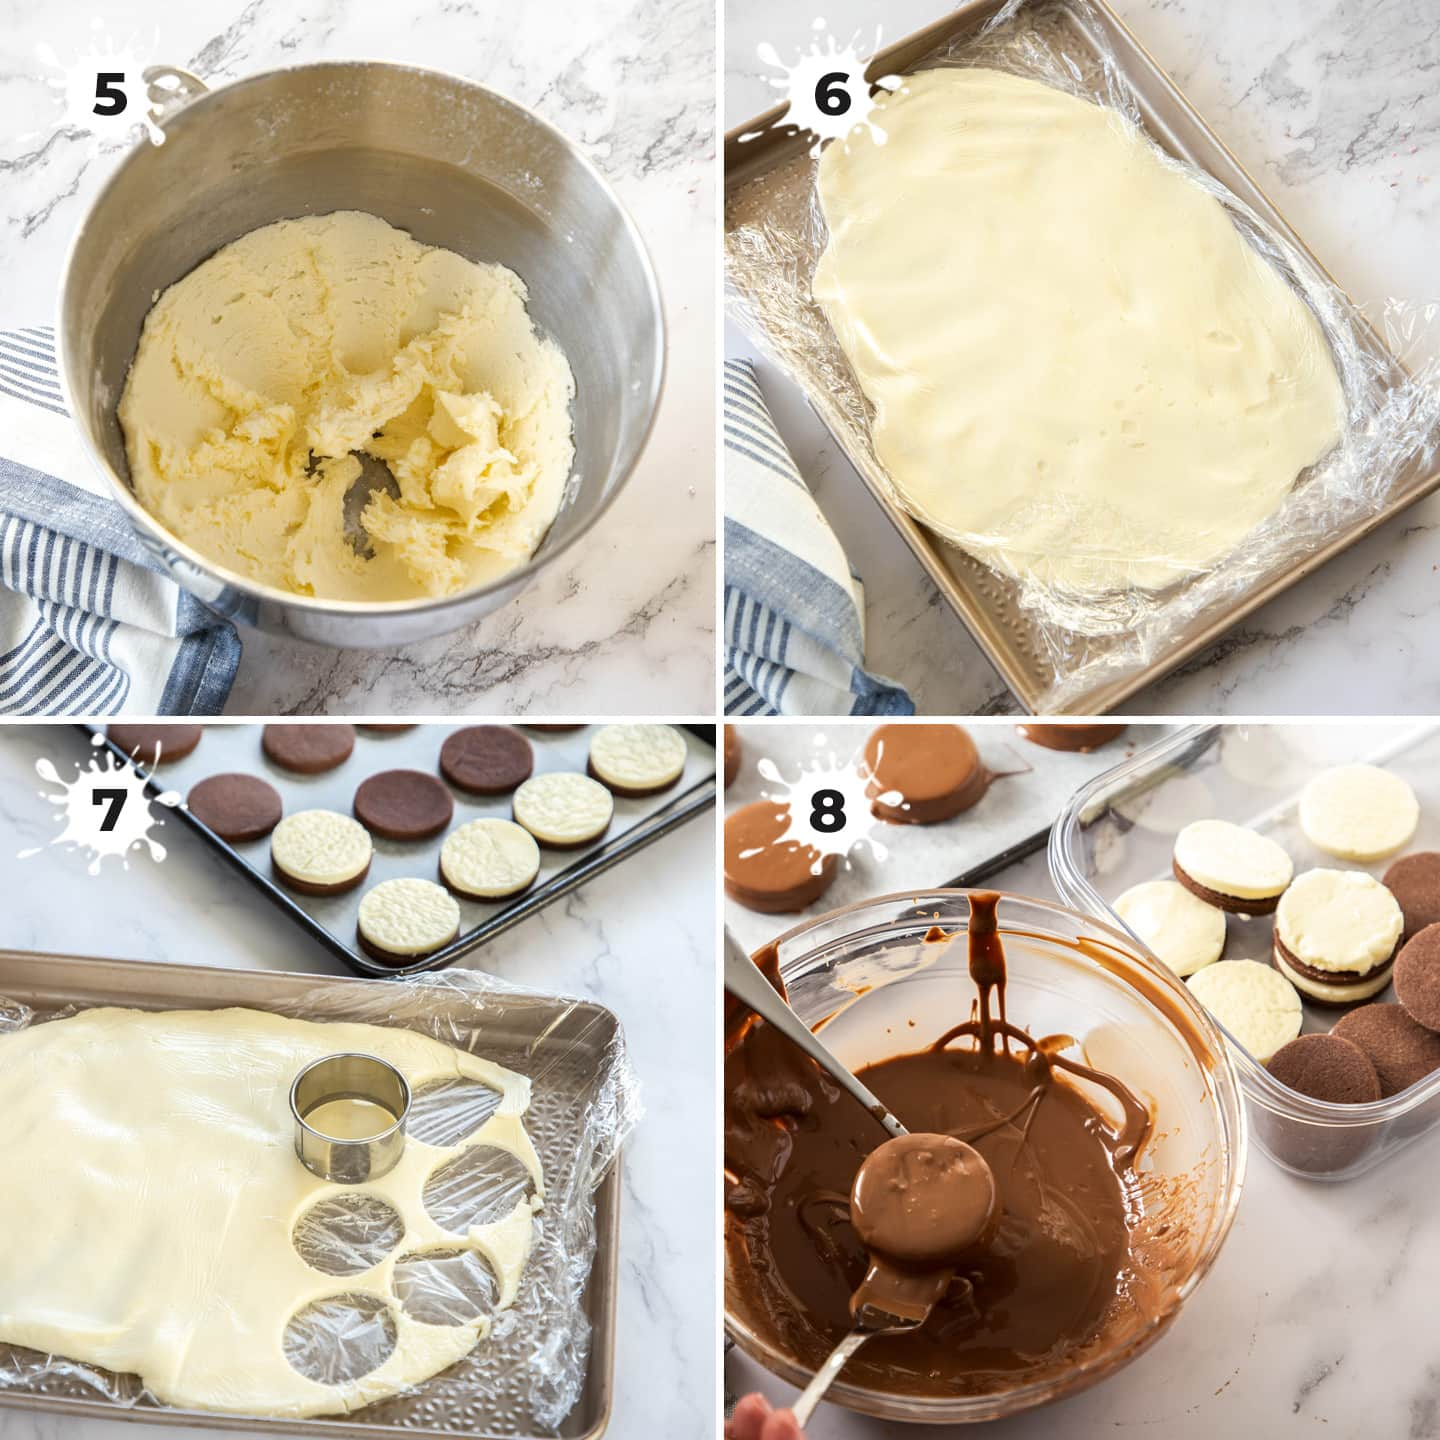 4 images showing the peppermint cream filling being made